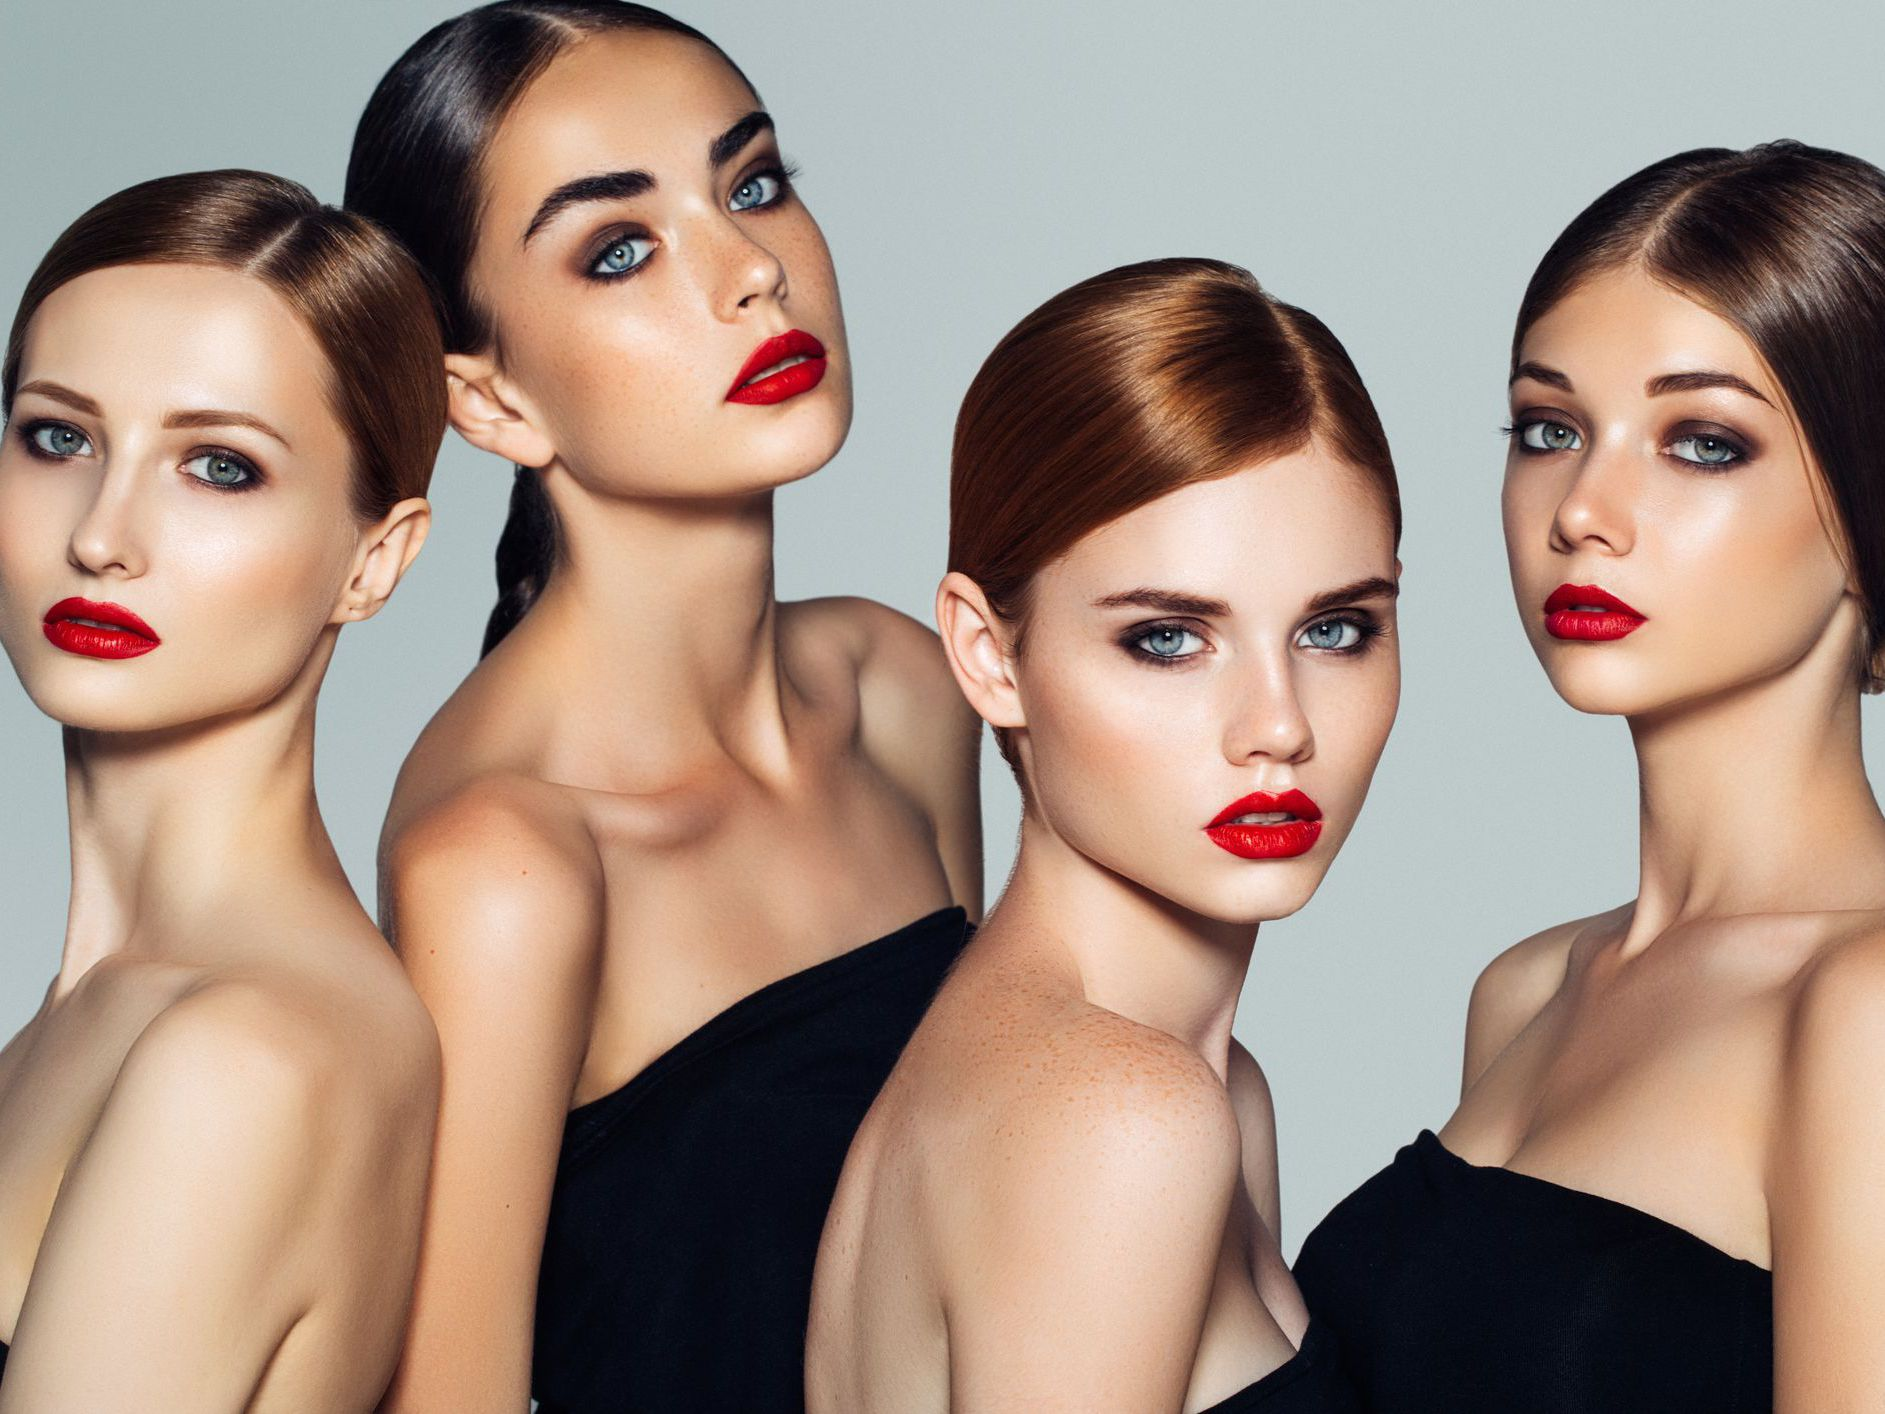 Find Your Big Break at One of These Top Female Modeling Agencies